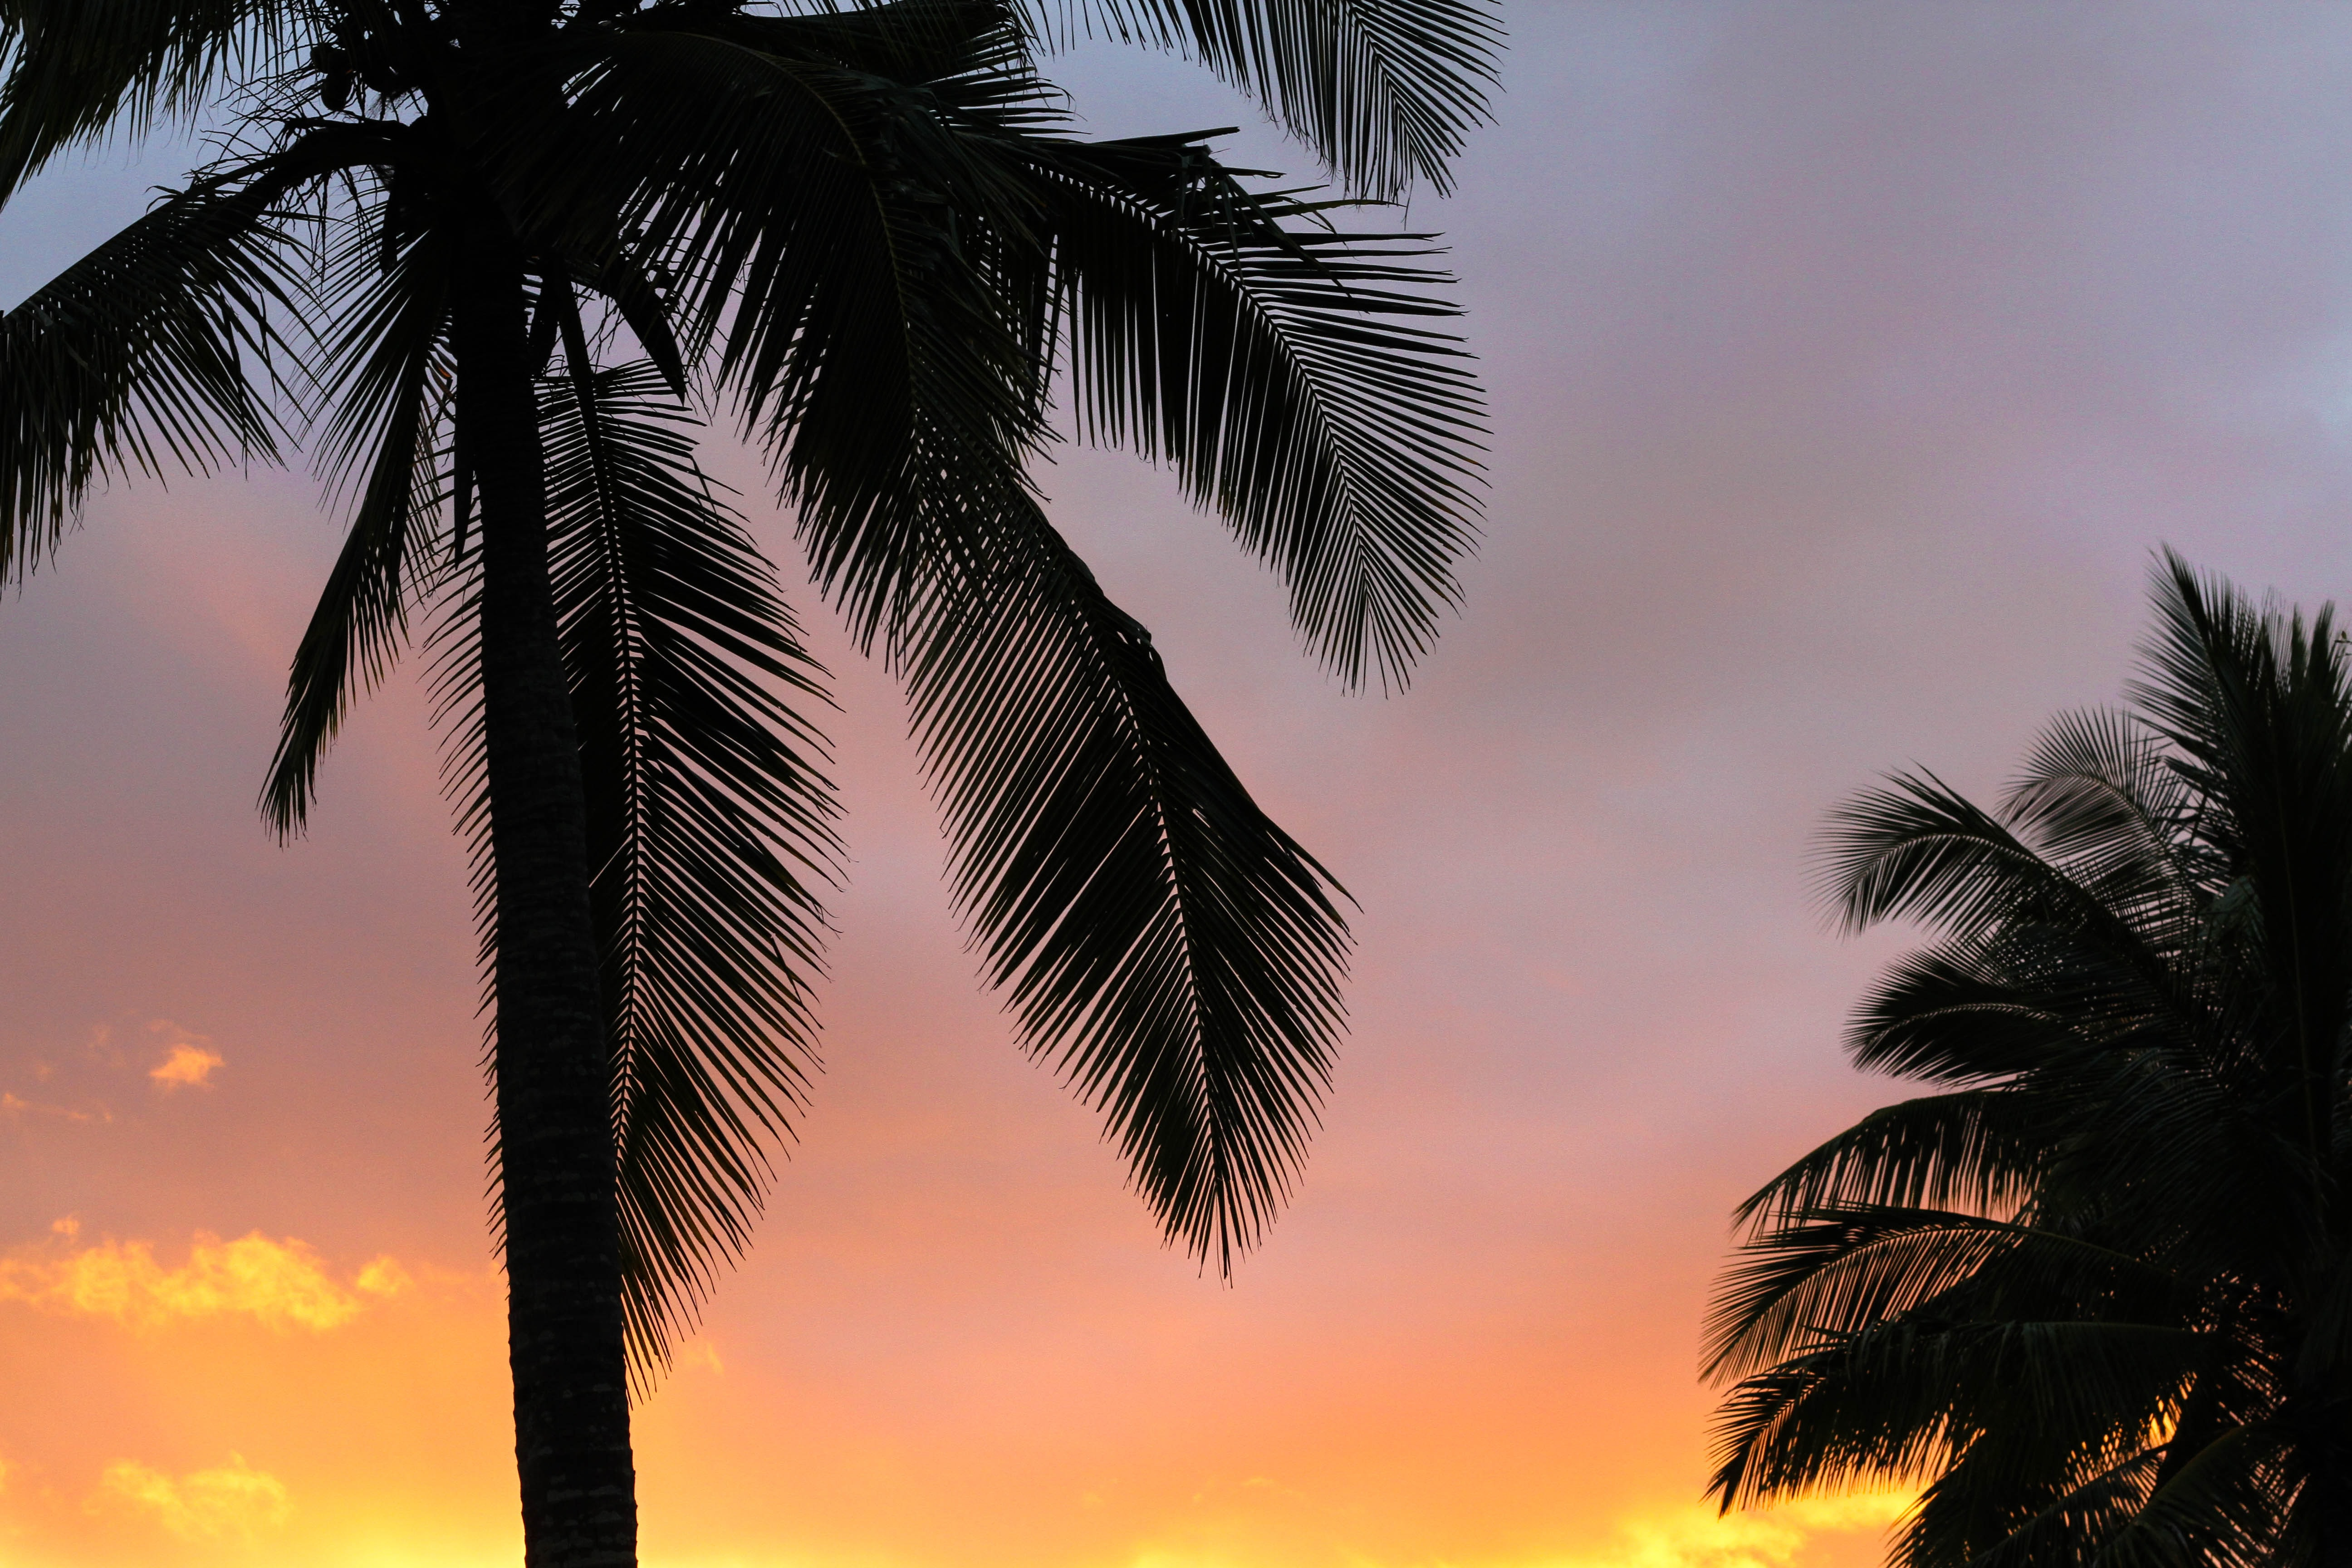 The silhouette of palm trees against an orange, pink, and purple sky during sunset